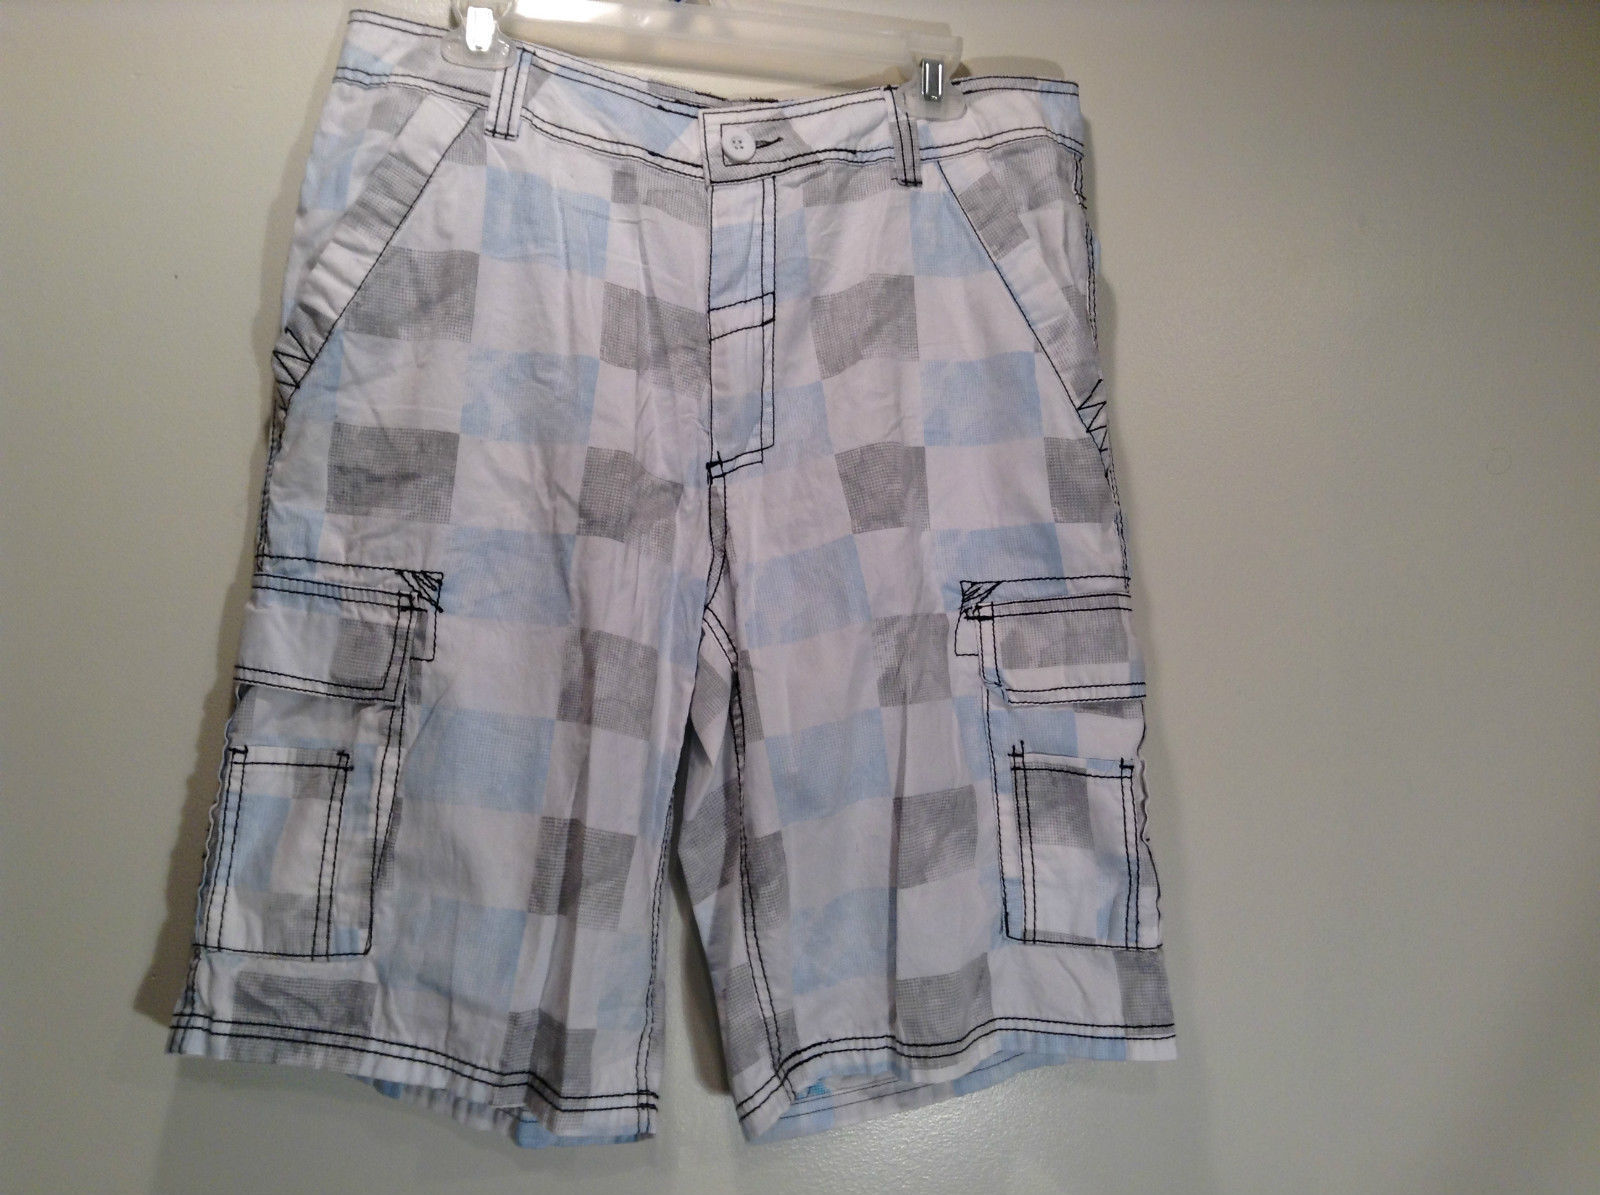 100 Percent Cotton Surplus 34 Casual Shorts Size 34 Front and Back Pockets